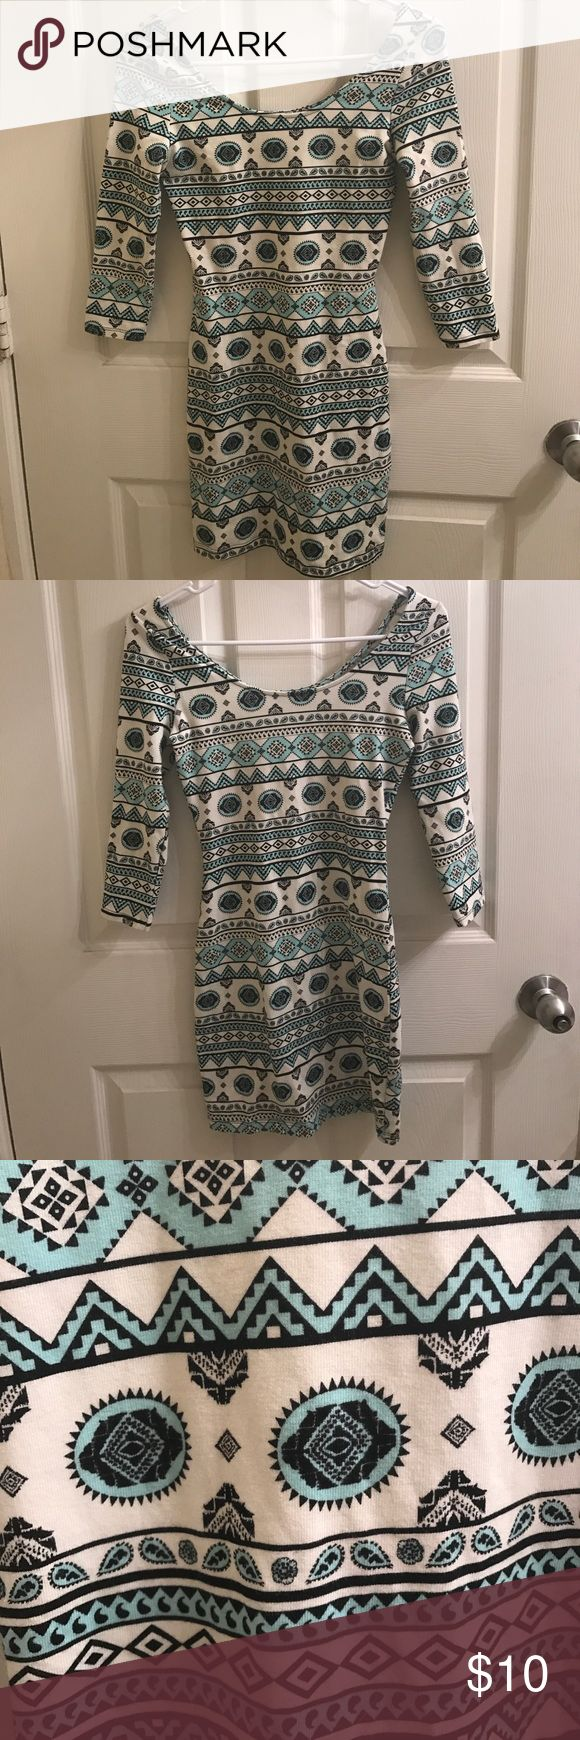 Small blue charlotte ruse dress Blue and white mini dress. New, never worn Charlotte Ruse. Charlotte Russe Dresses Mini